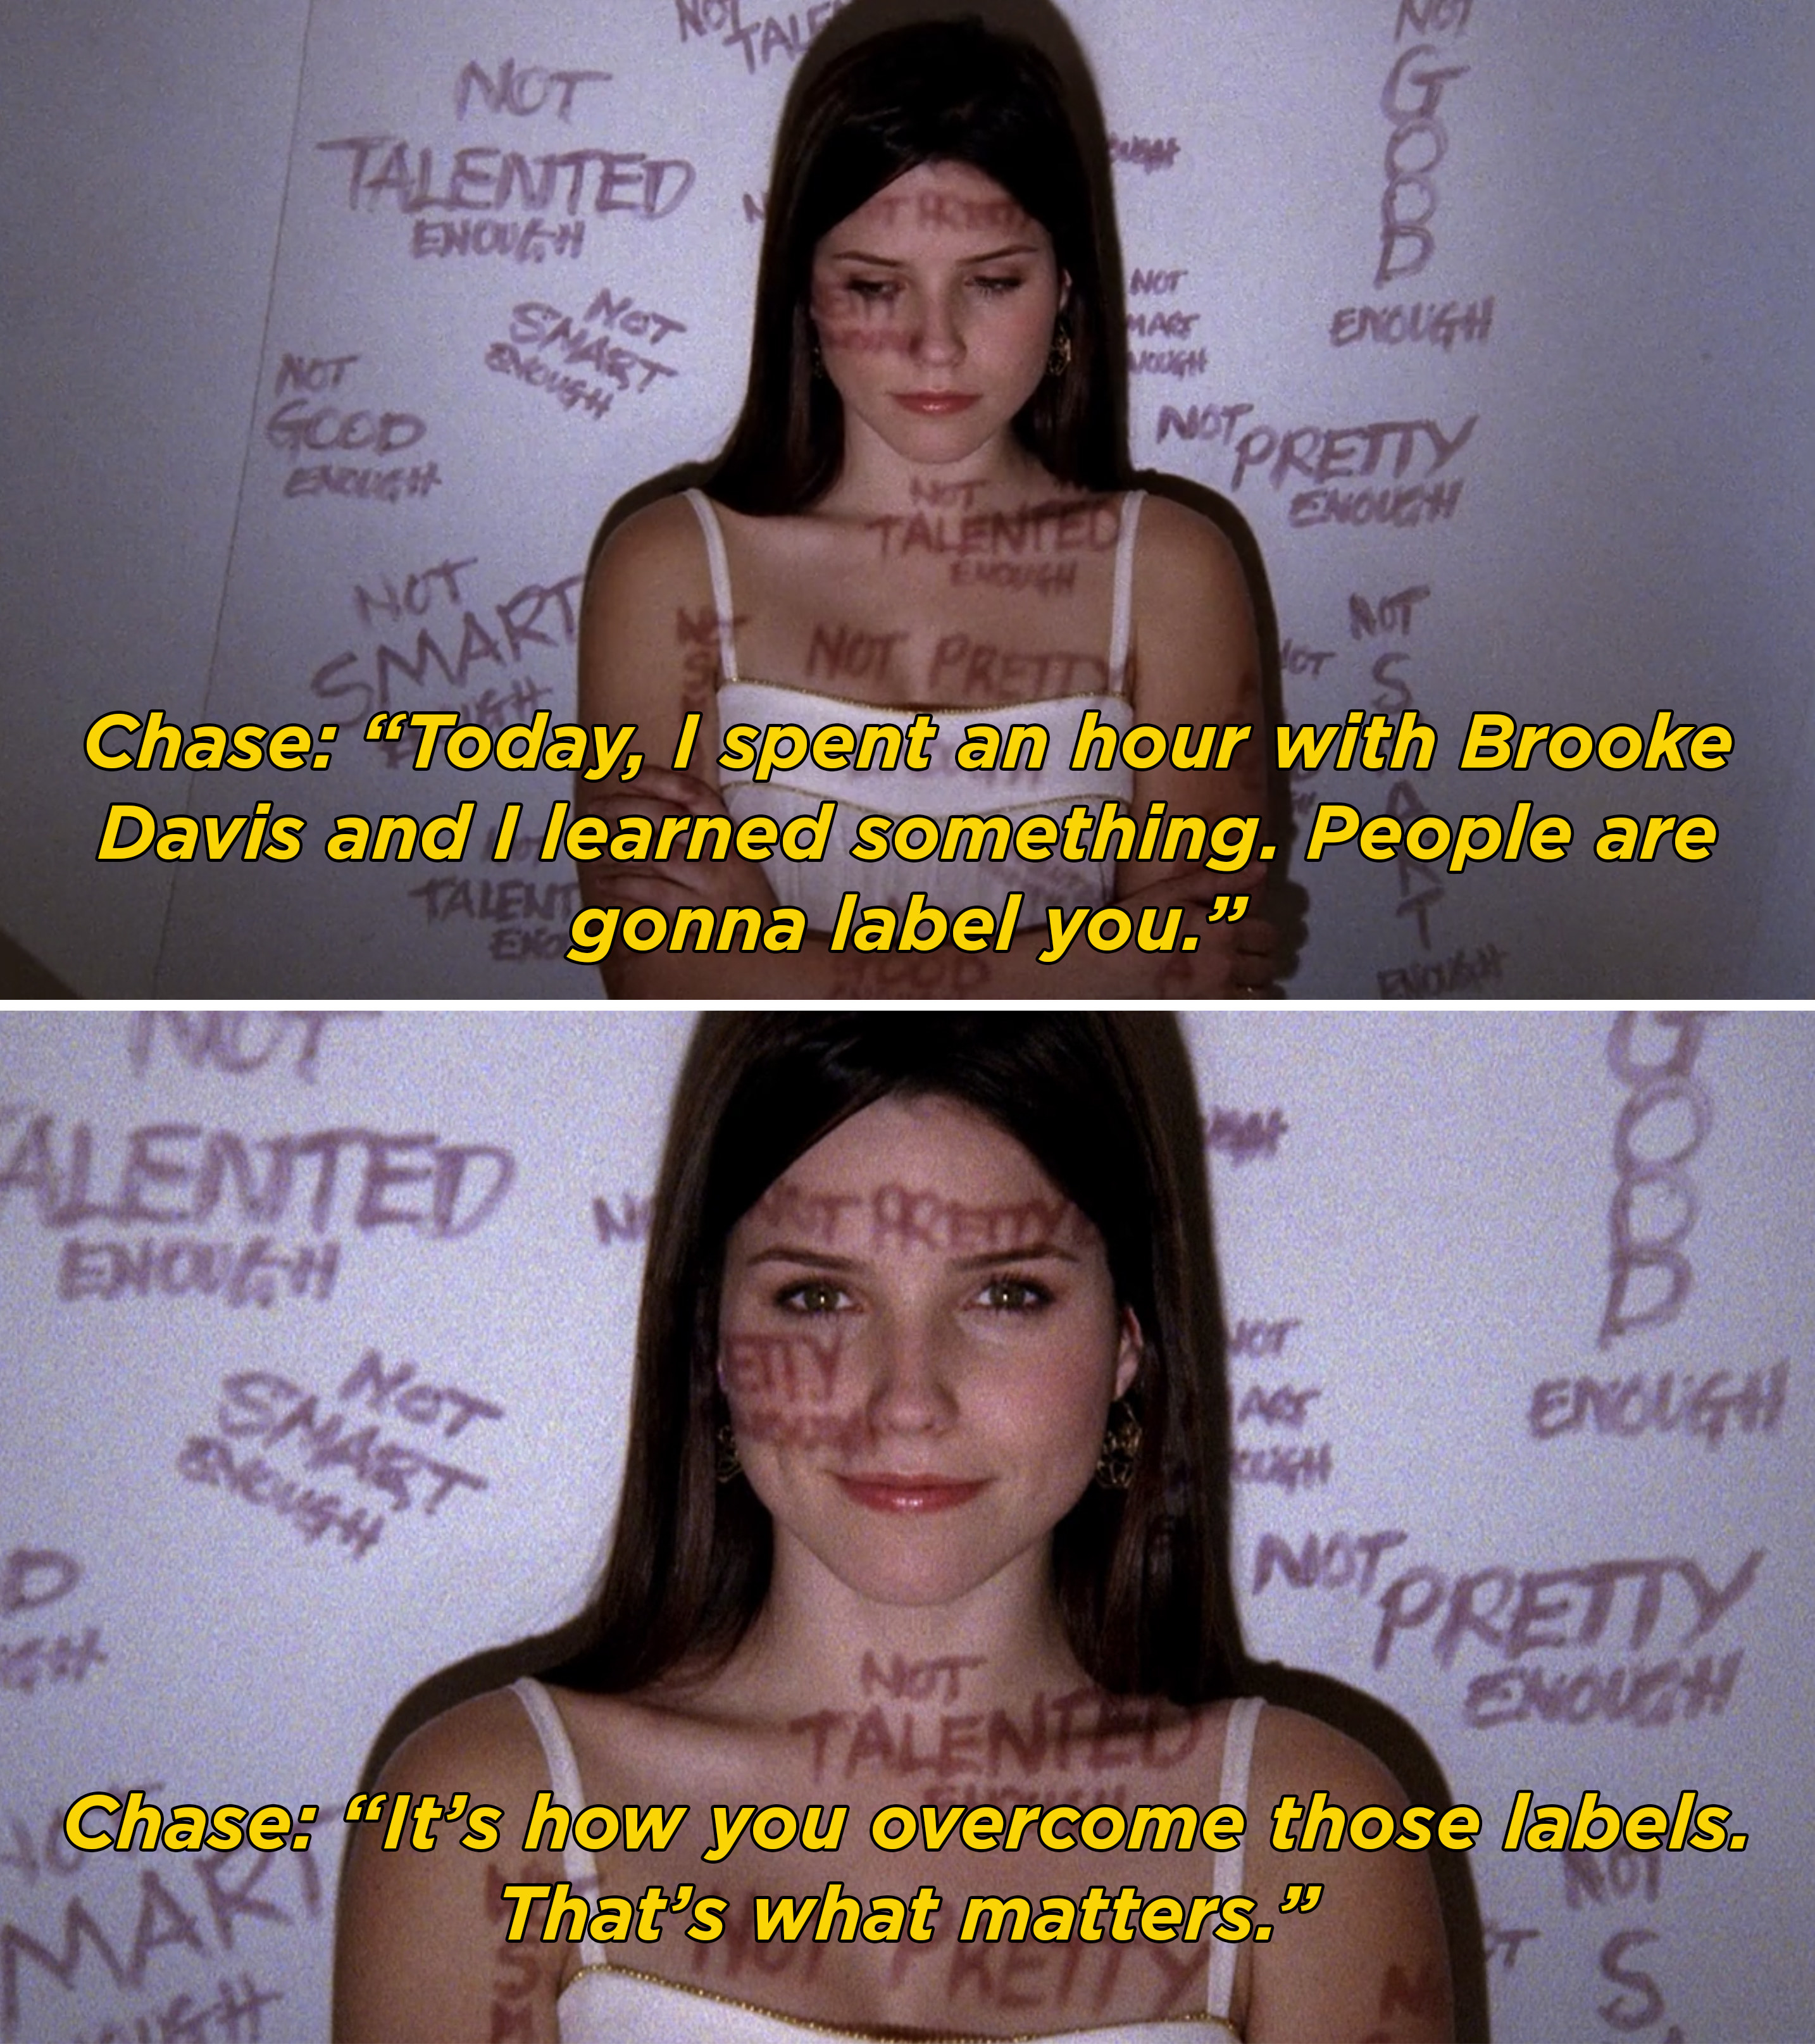 """Brooke standing with words like """"Not pretty enough"""" and """"not talented enough"""" written on her body and around her"""